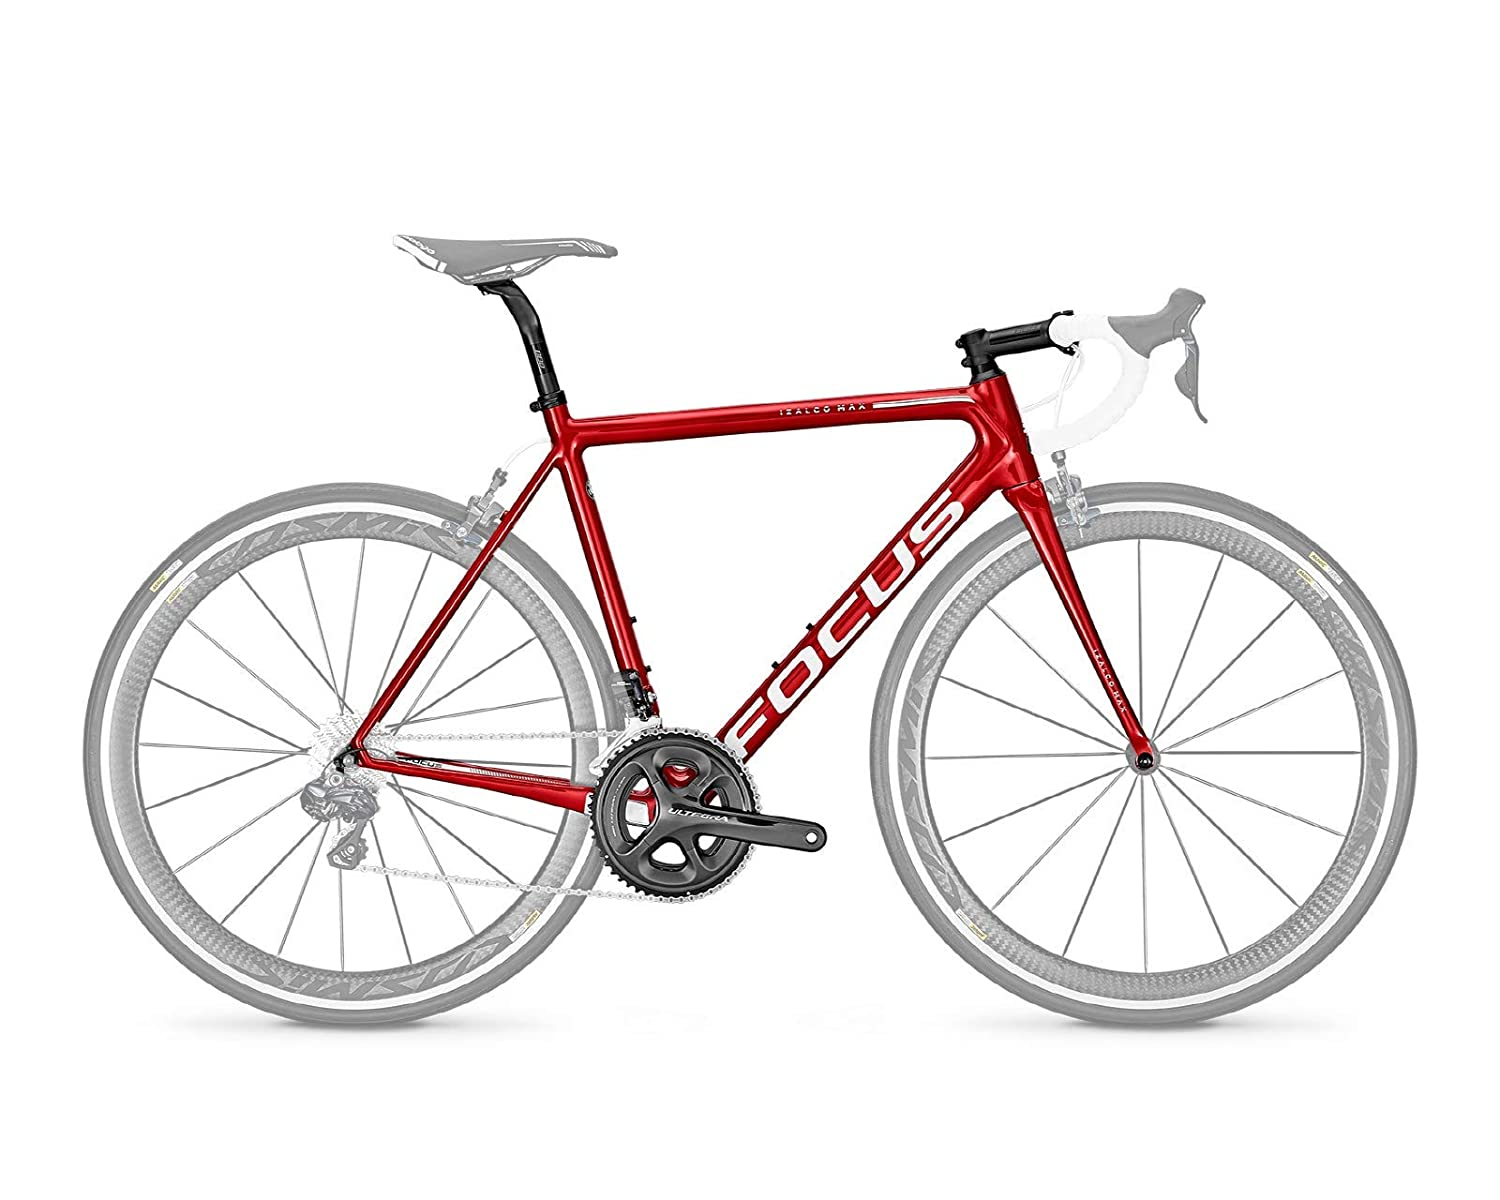 FOCUS(フォーカス) Izalco Max Mechanical フレームセット 2018年 - Candy Red [Size: XXS/XS/S/M/L] [並行輸入品] S[52]  B07N84KB62